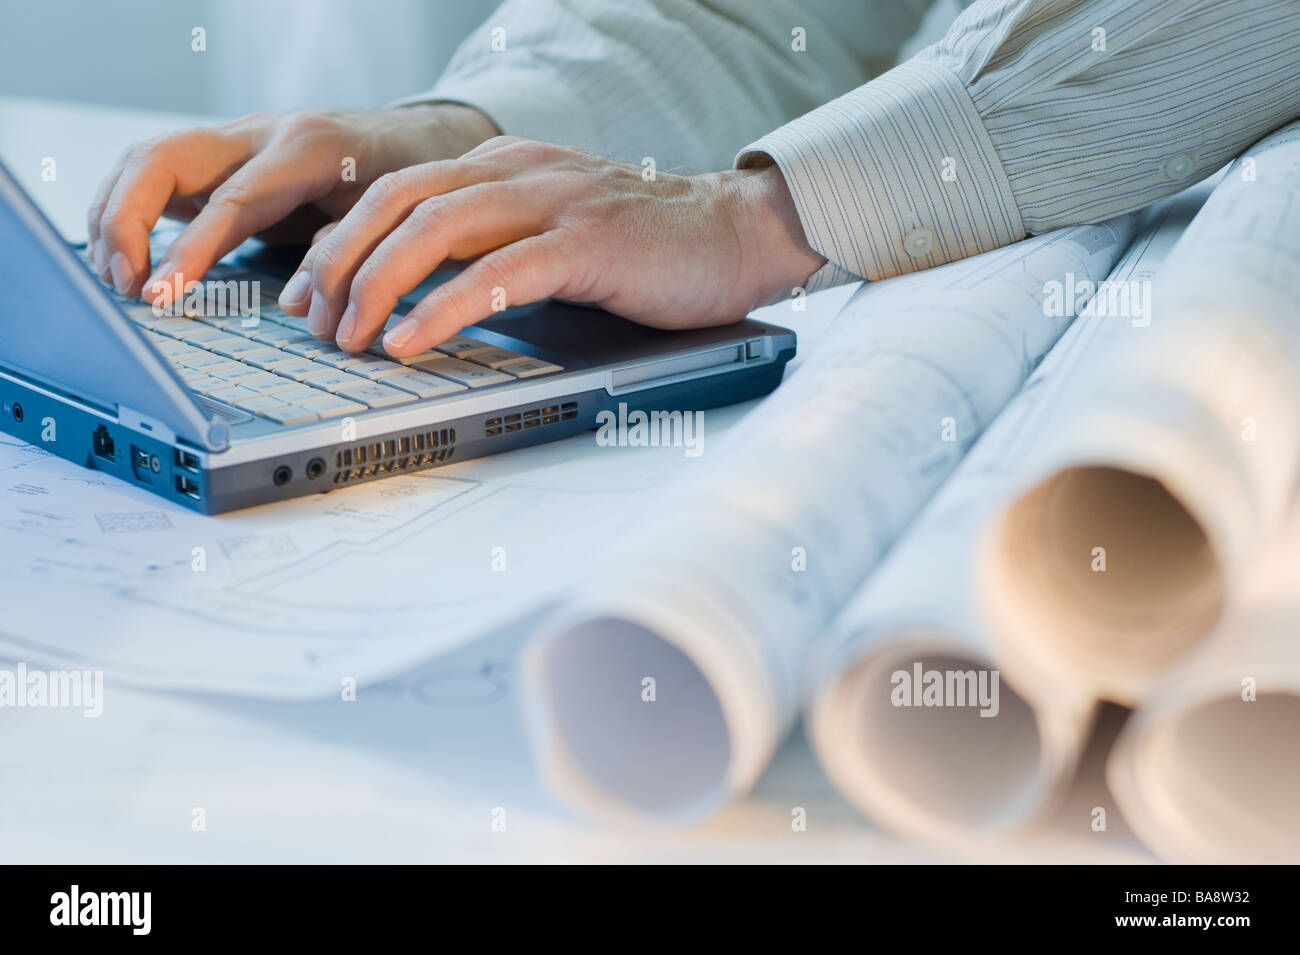 Architect with blueprints and laptop - Stock Image